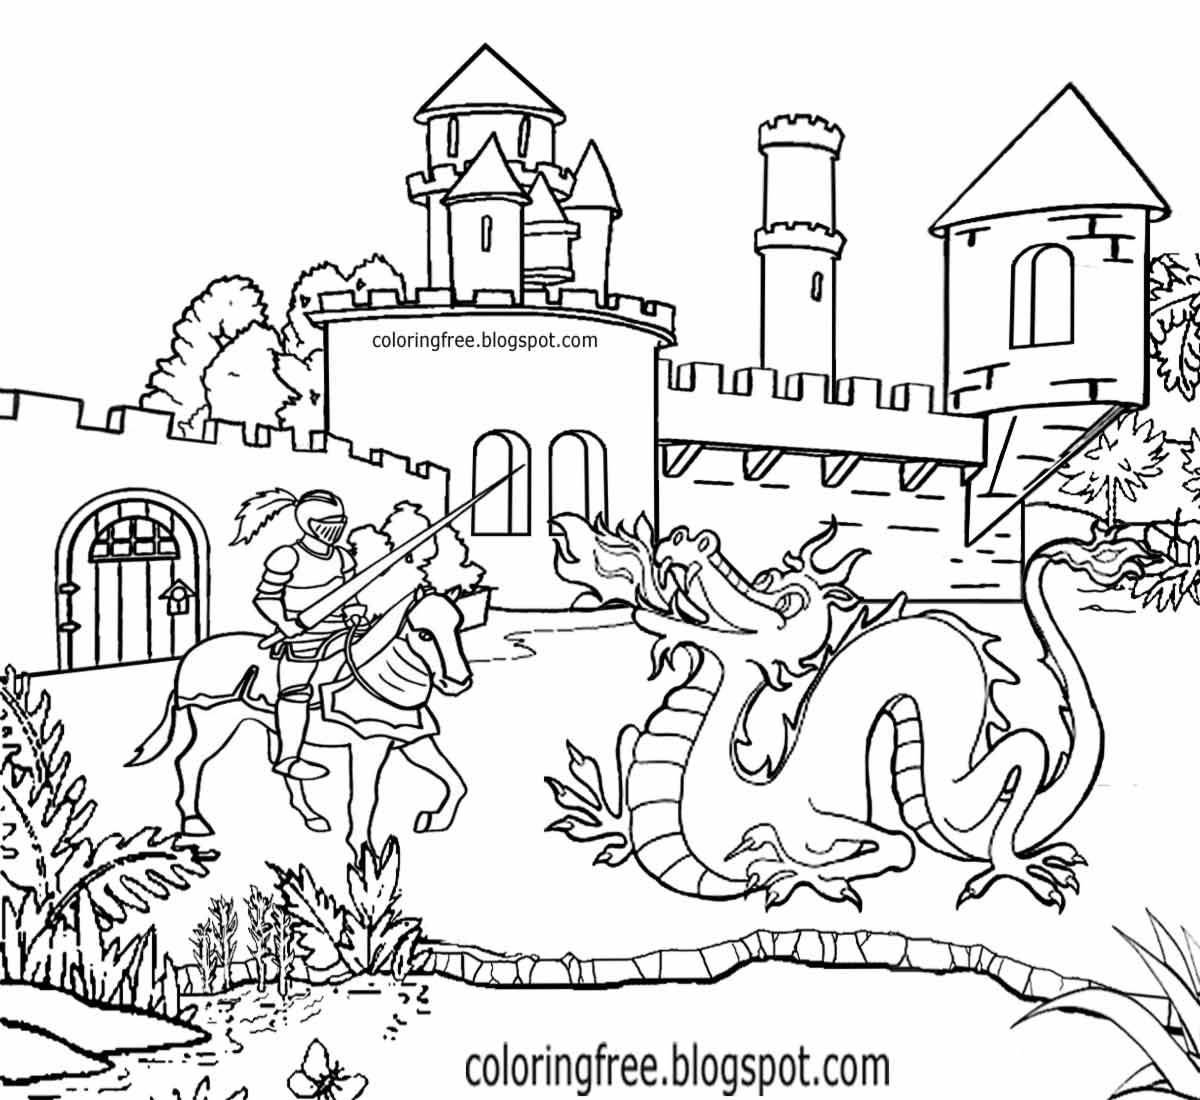 coloring pages of a castle fantasy castle drawing at getdrawings free download pages a of coloring castle